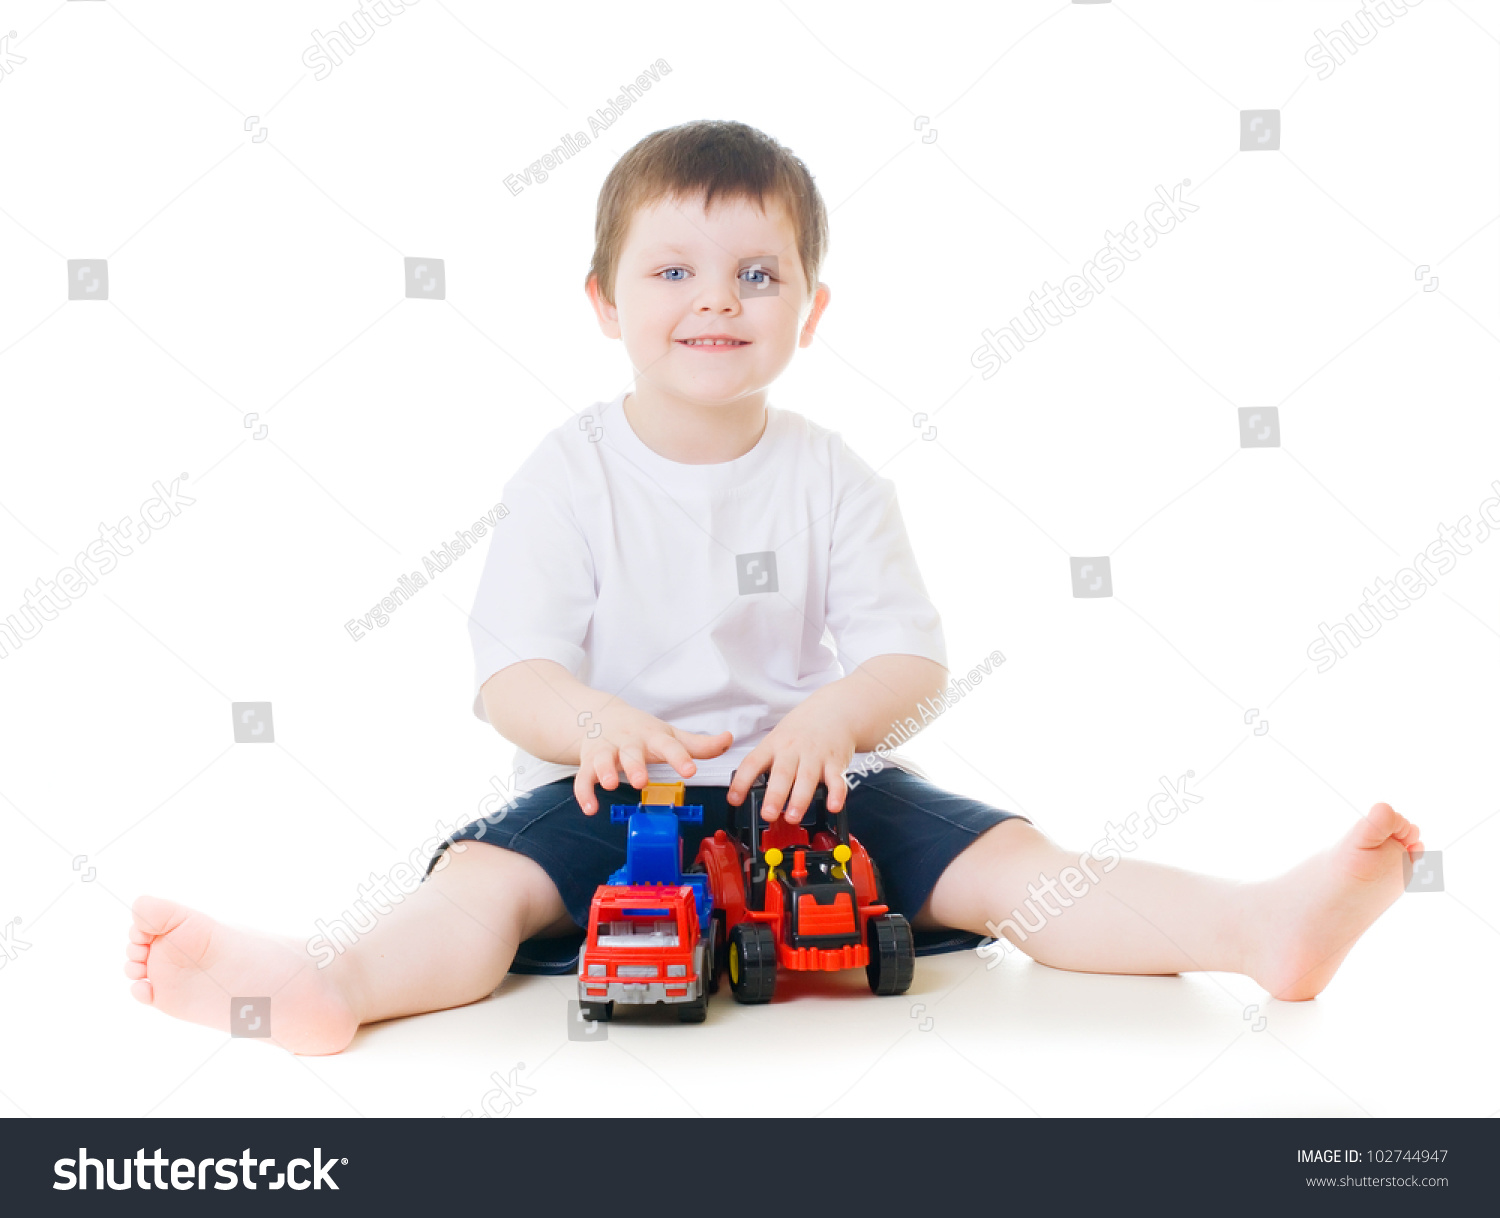 Little Boy With Toy Car : Smiling little boy playing with toy cars stock photo